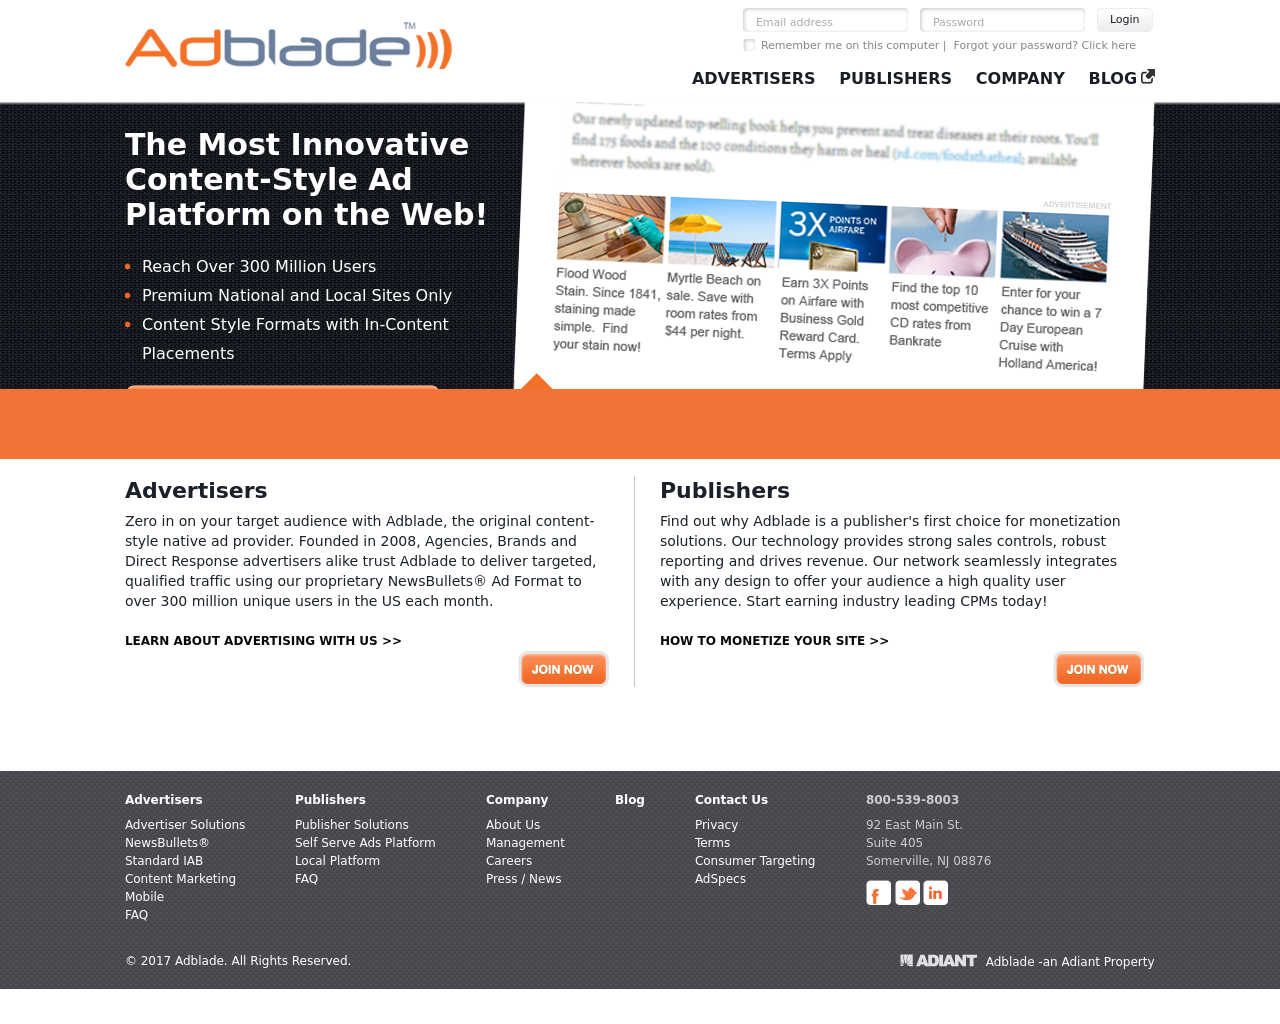 AdBlade-Advertising-Reviews-Pricing